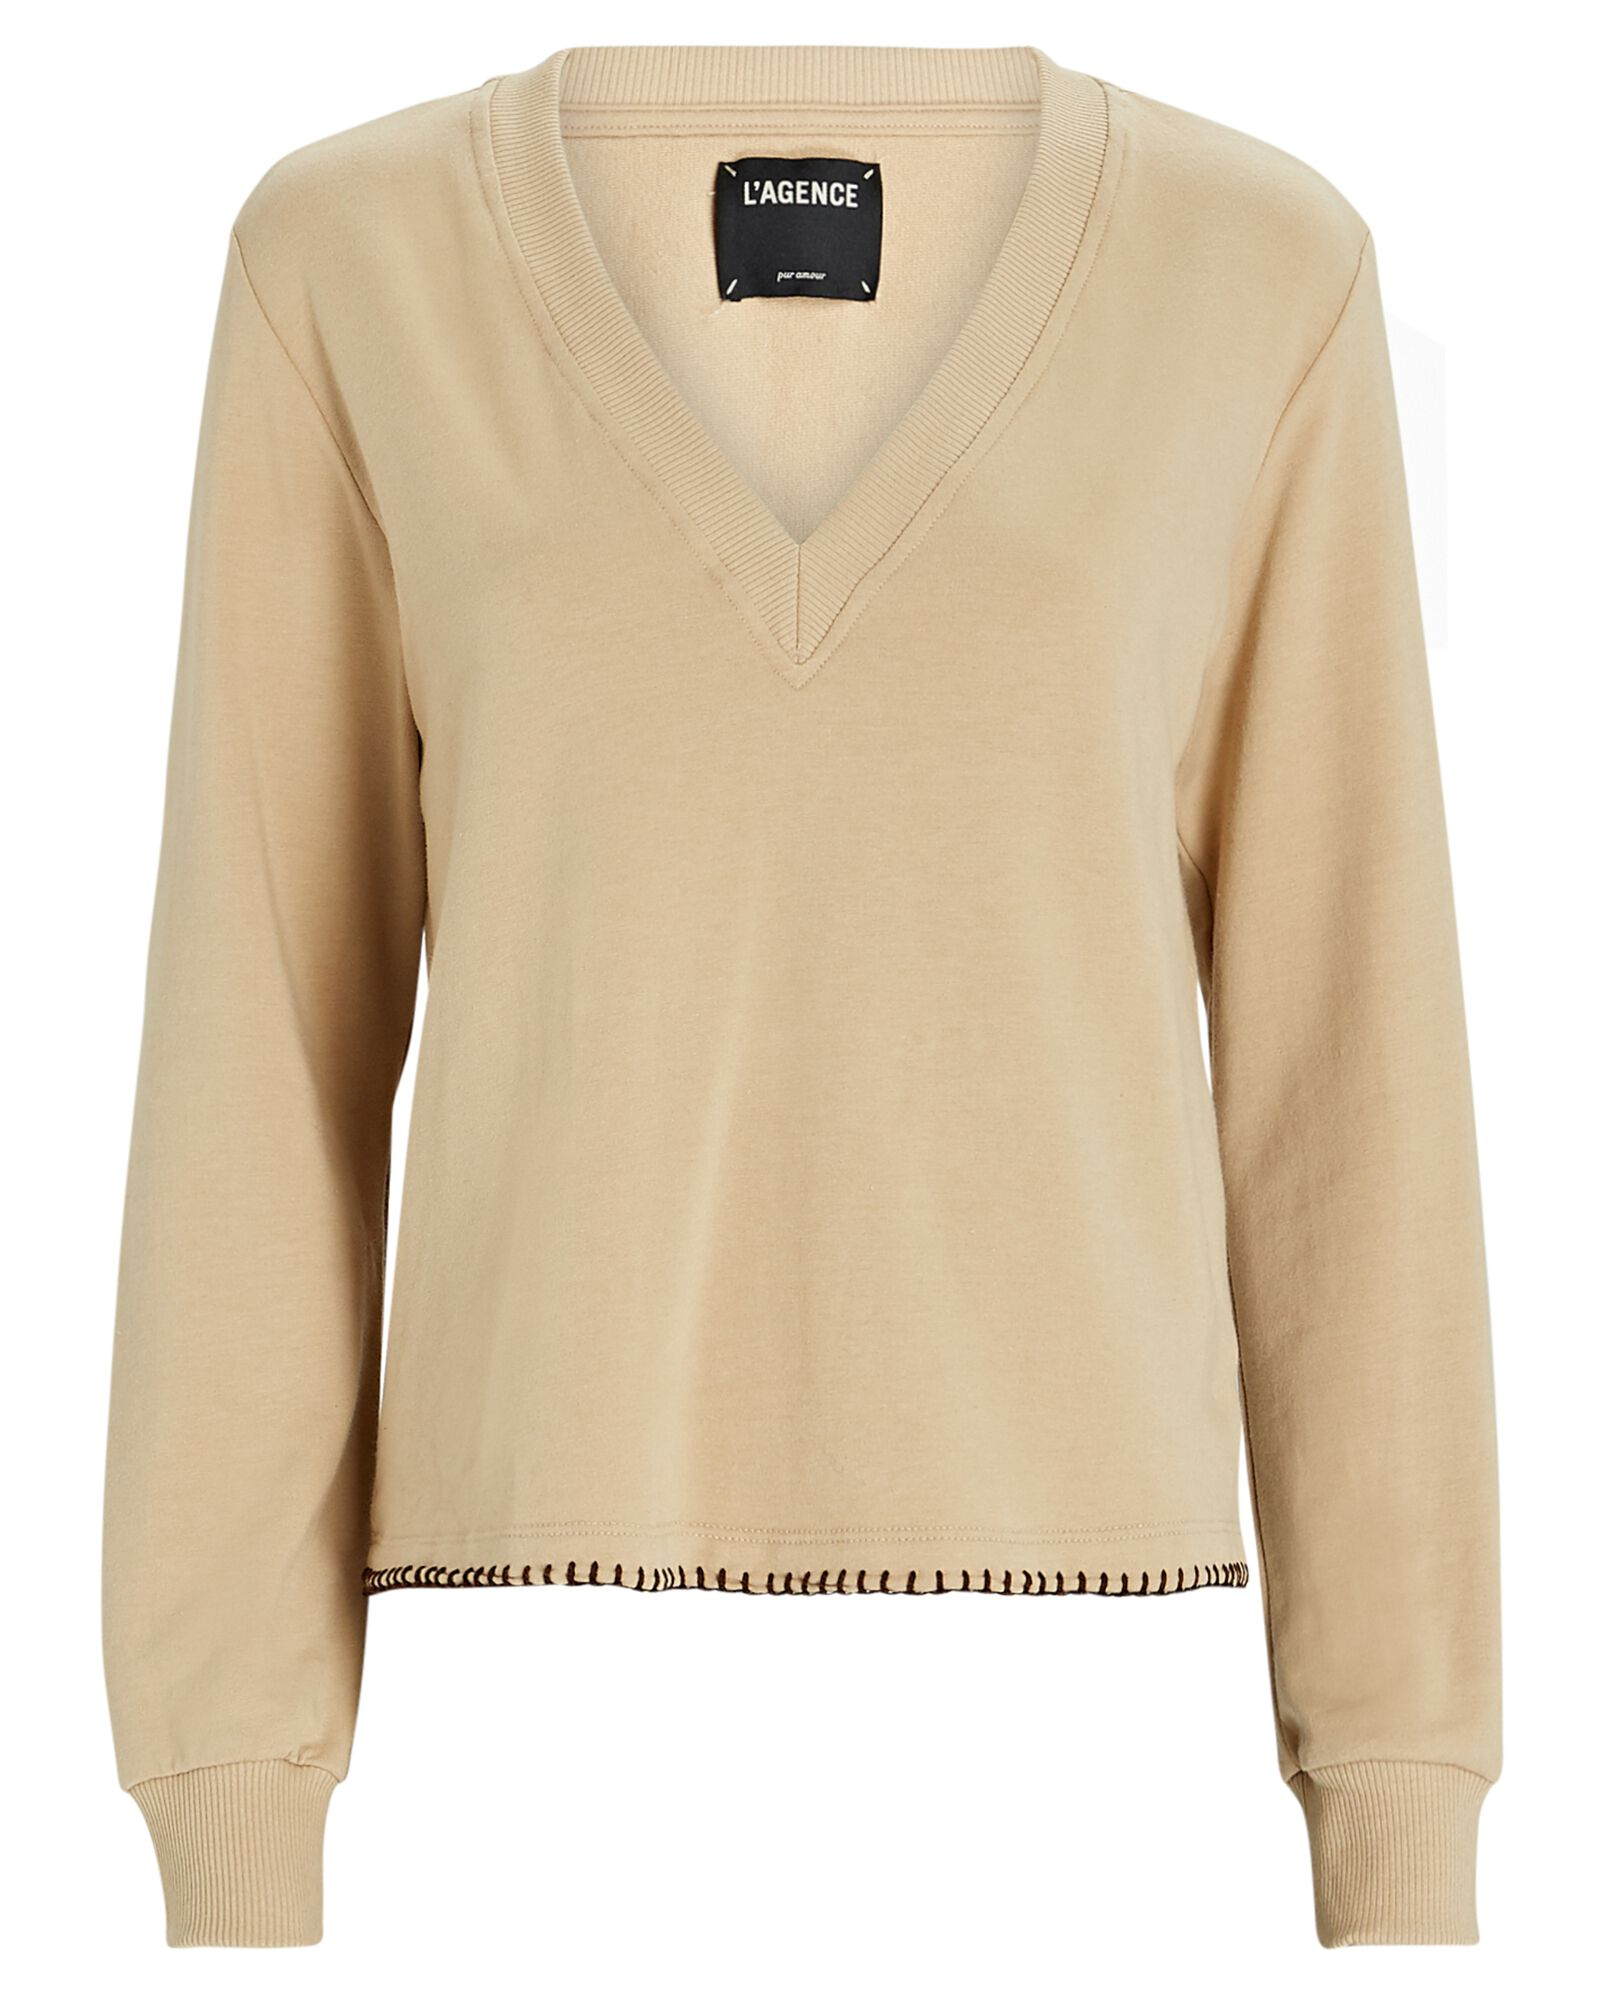 Helena V-Neck Cotton Sweatshirt, BEIGE, hi-res